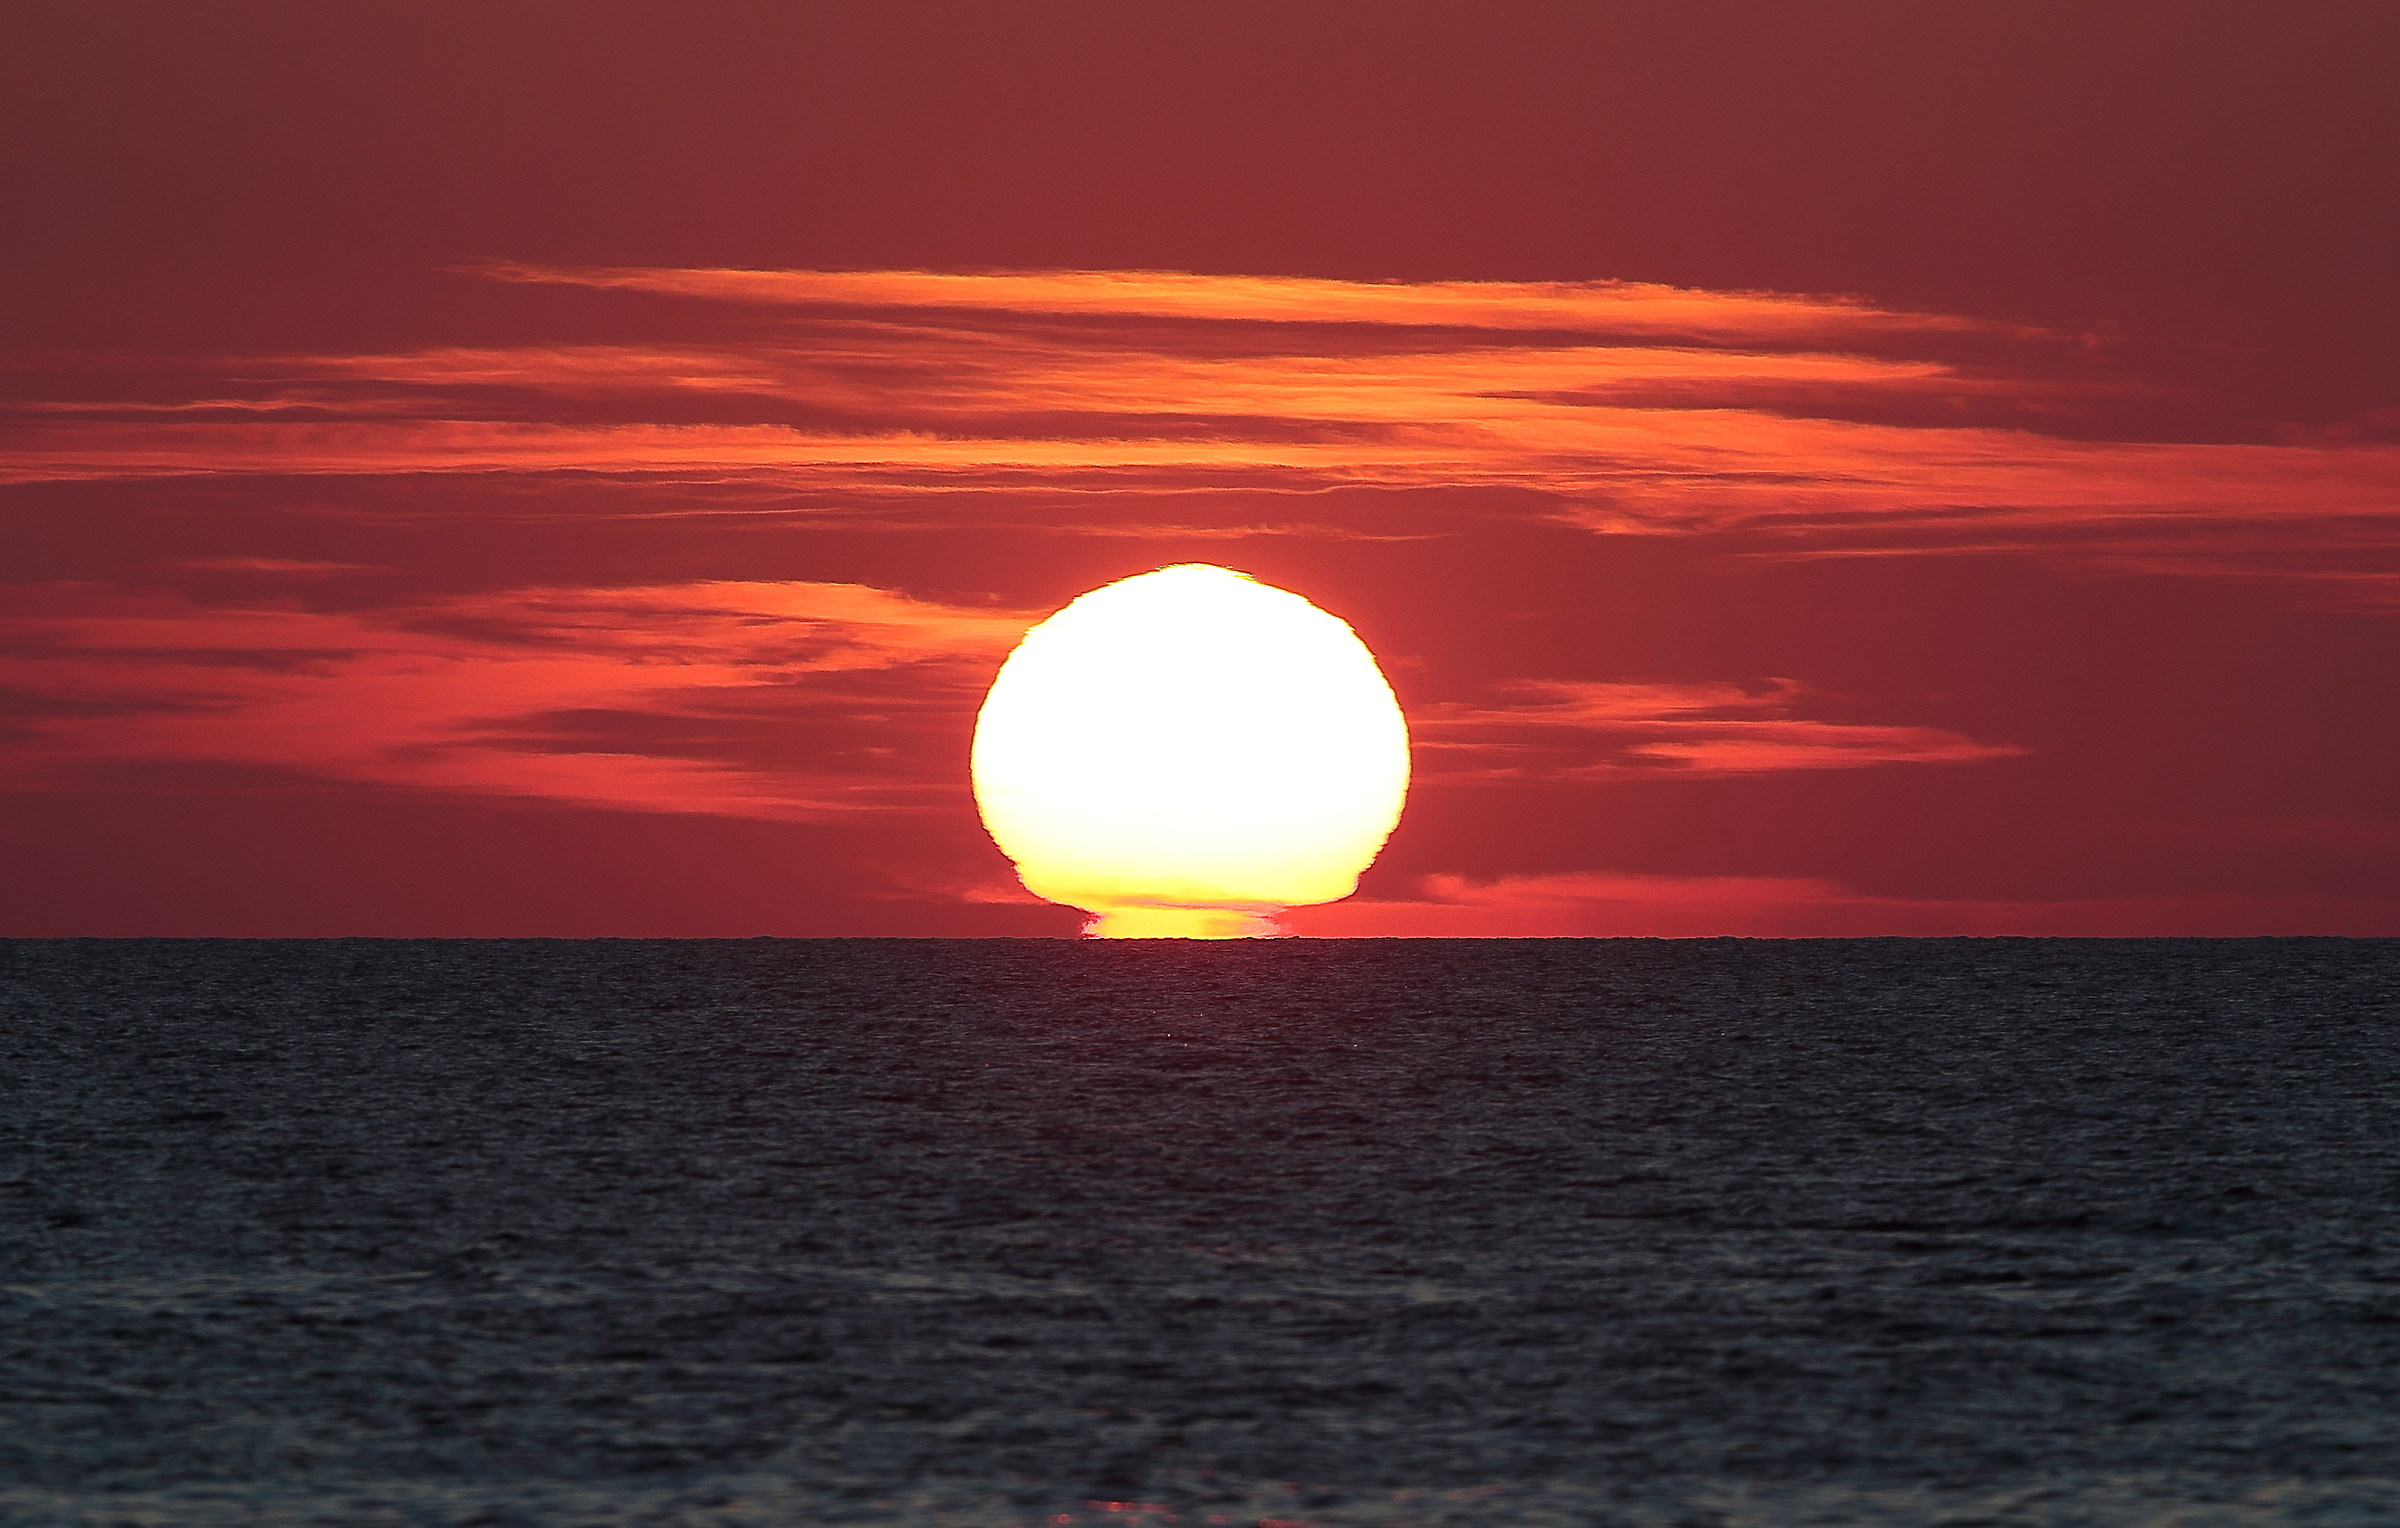 When the sun sinks into the sea...